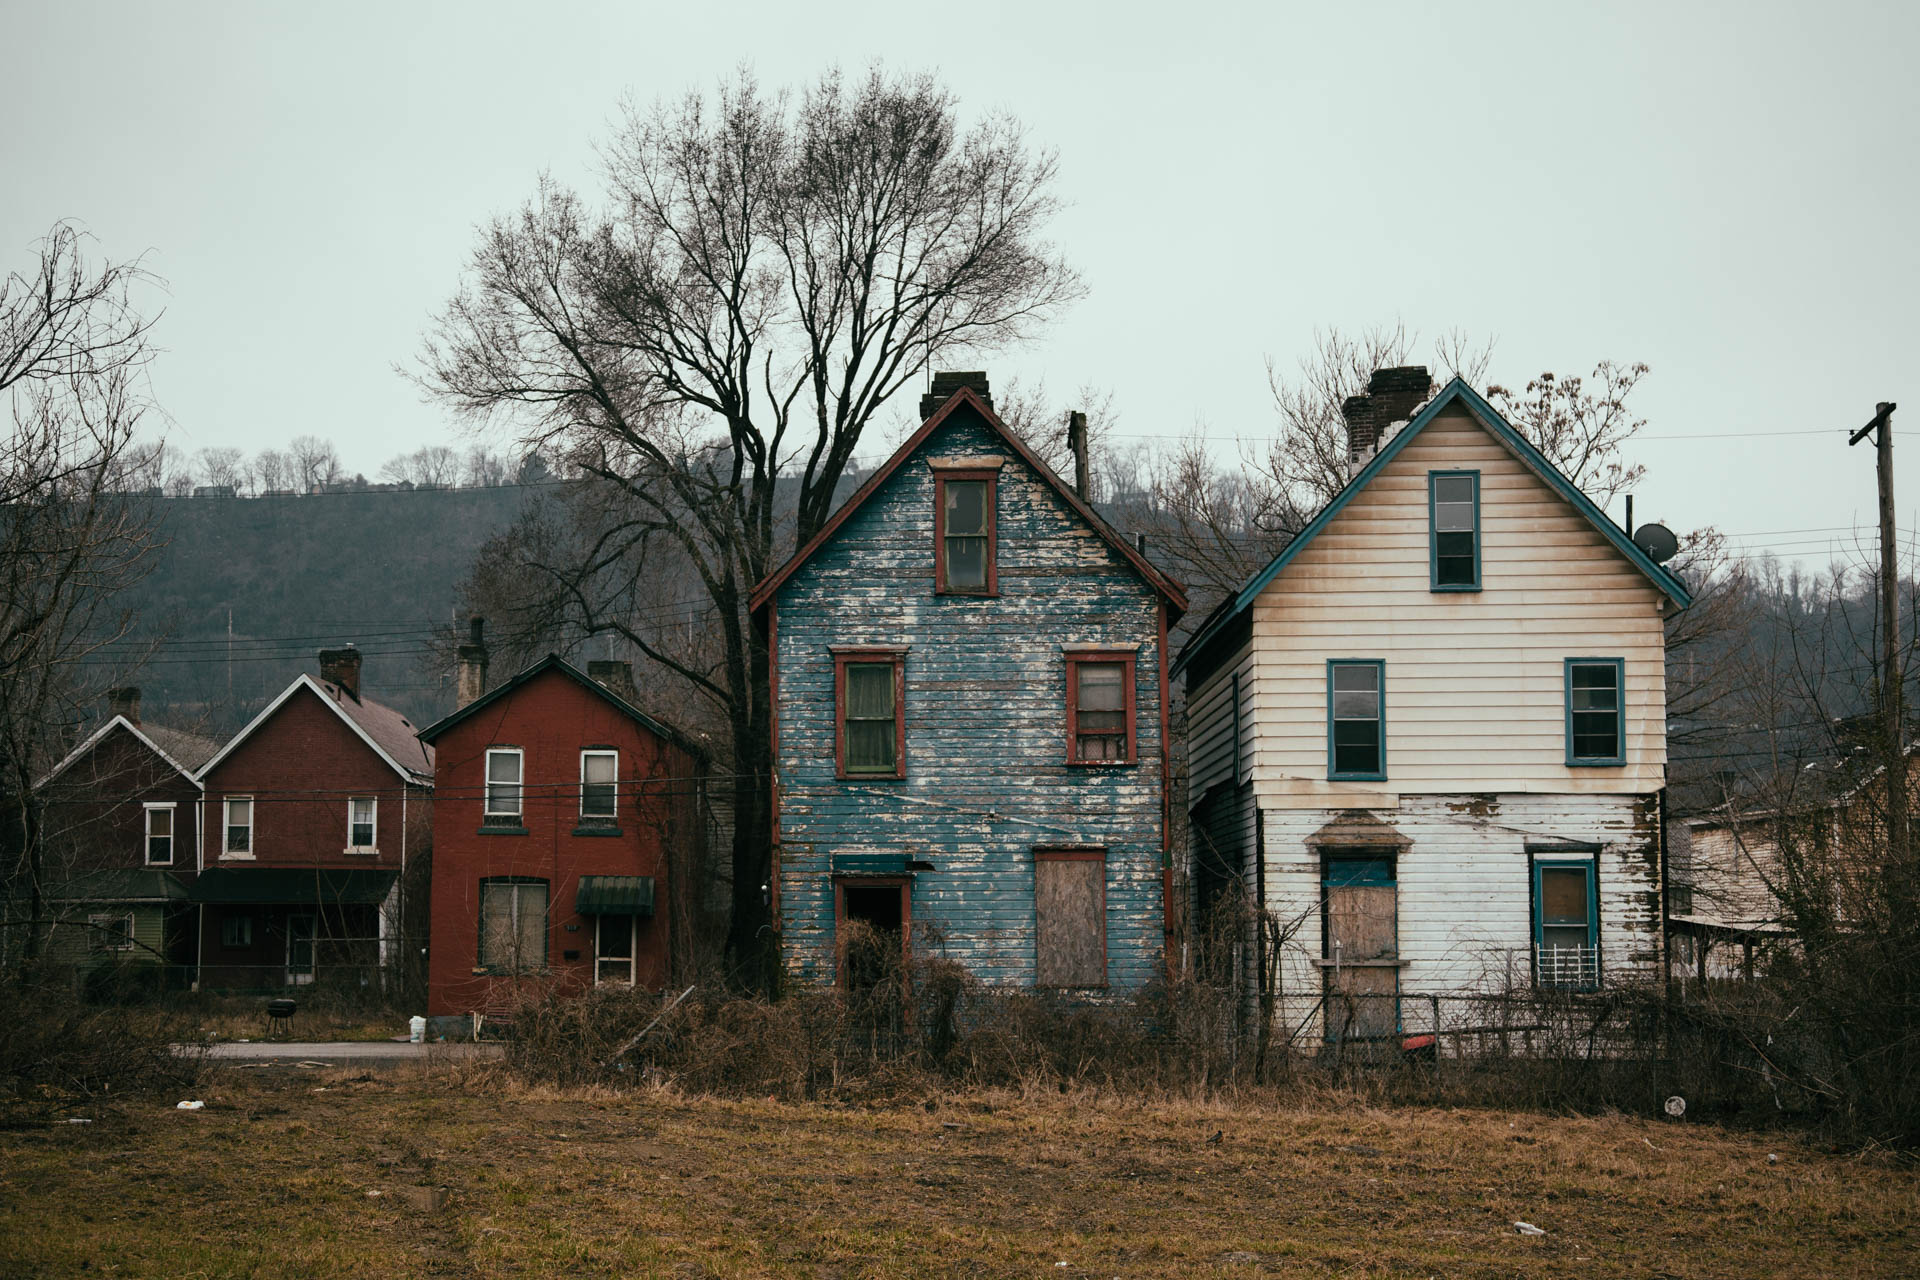 braddock-pa-row-houses-decay